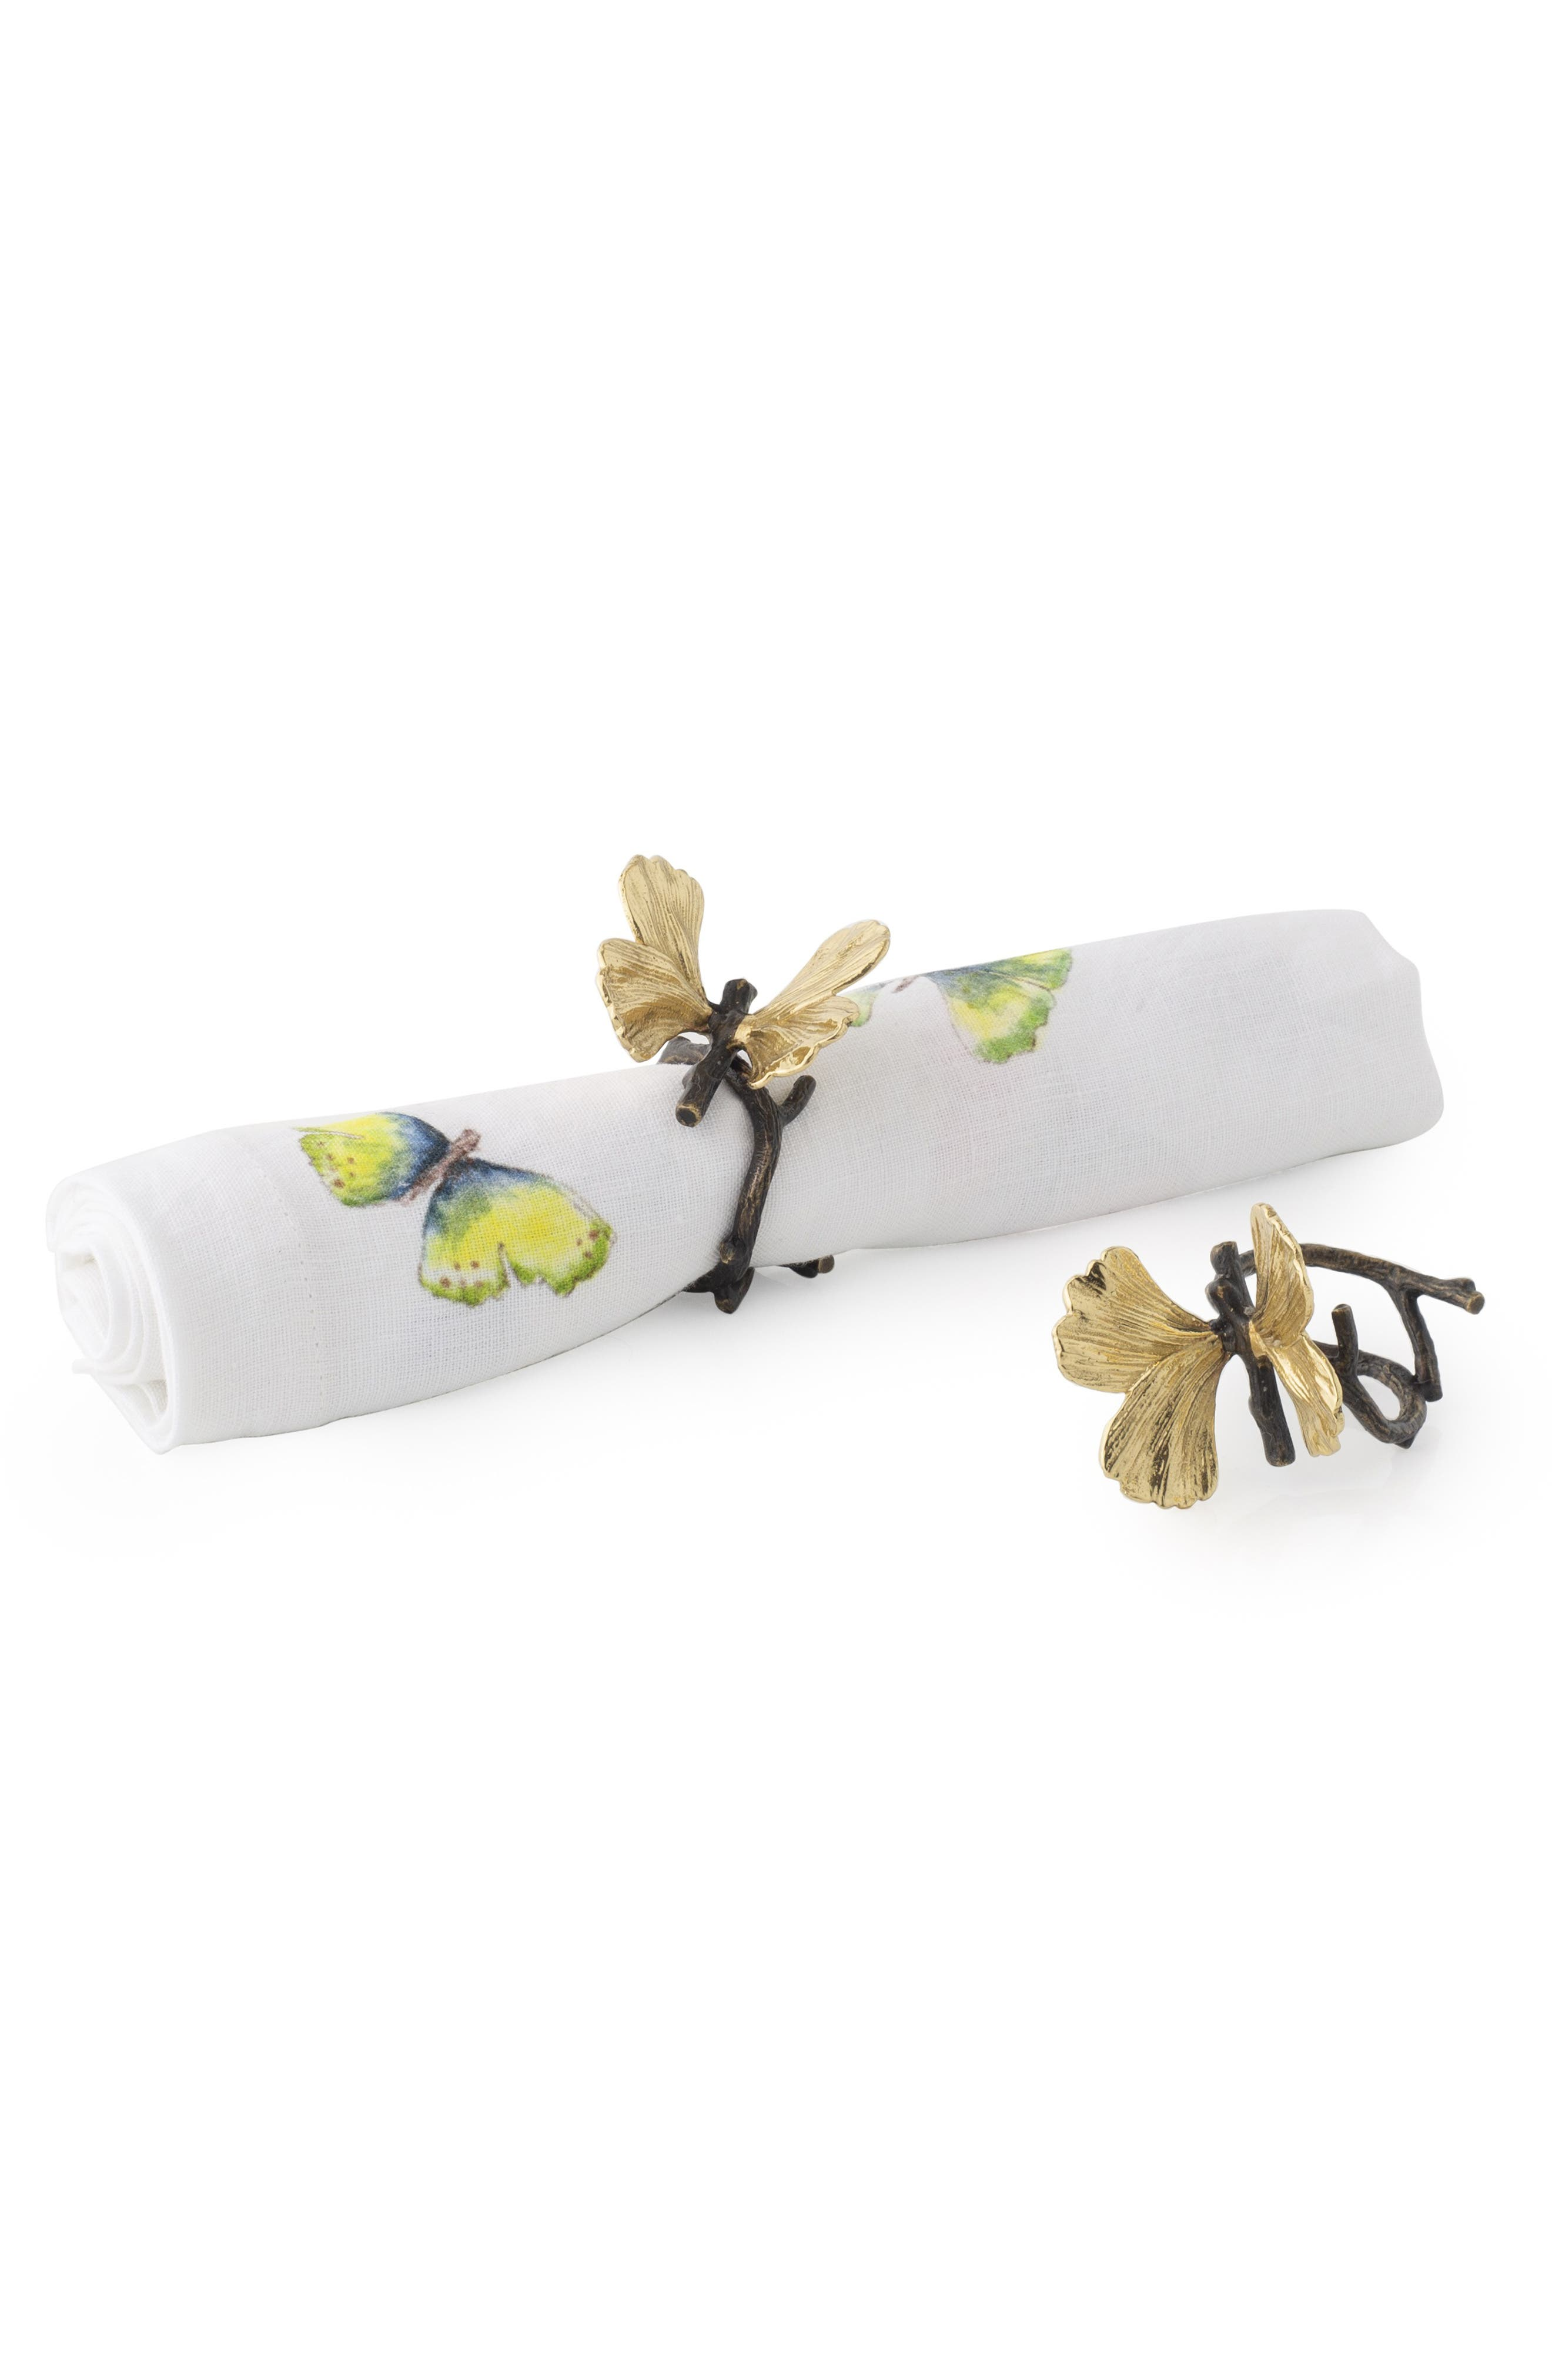 MICHAEL ARAM Butterfly Ginkgo Set of 4 Napkin Rings, Main, color, SILVER